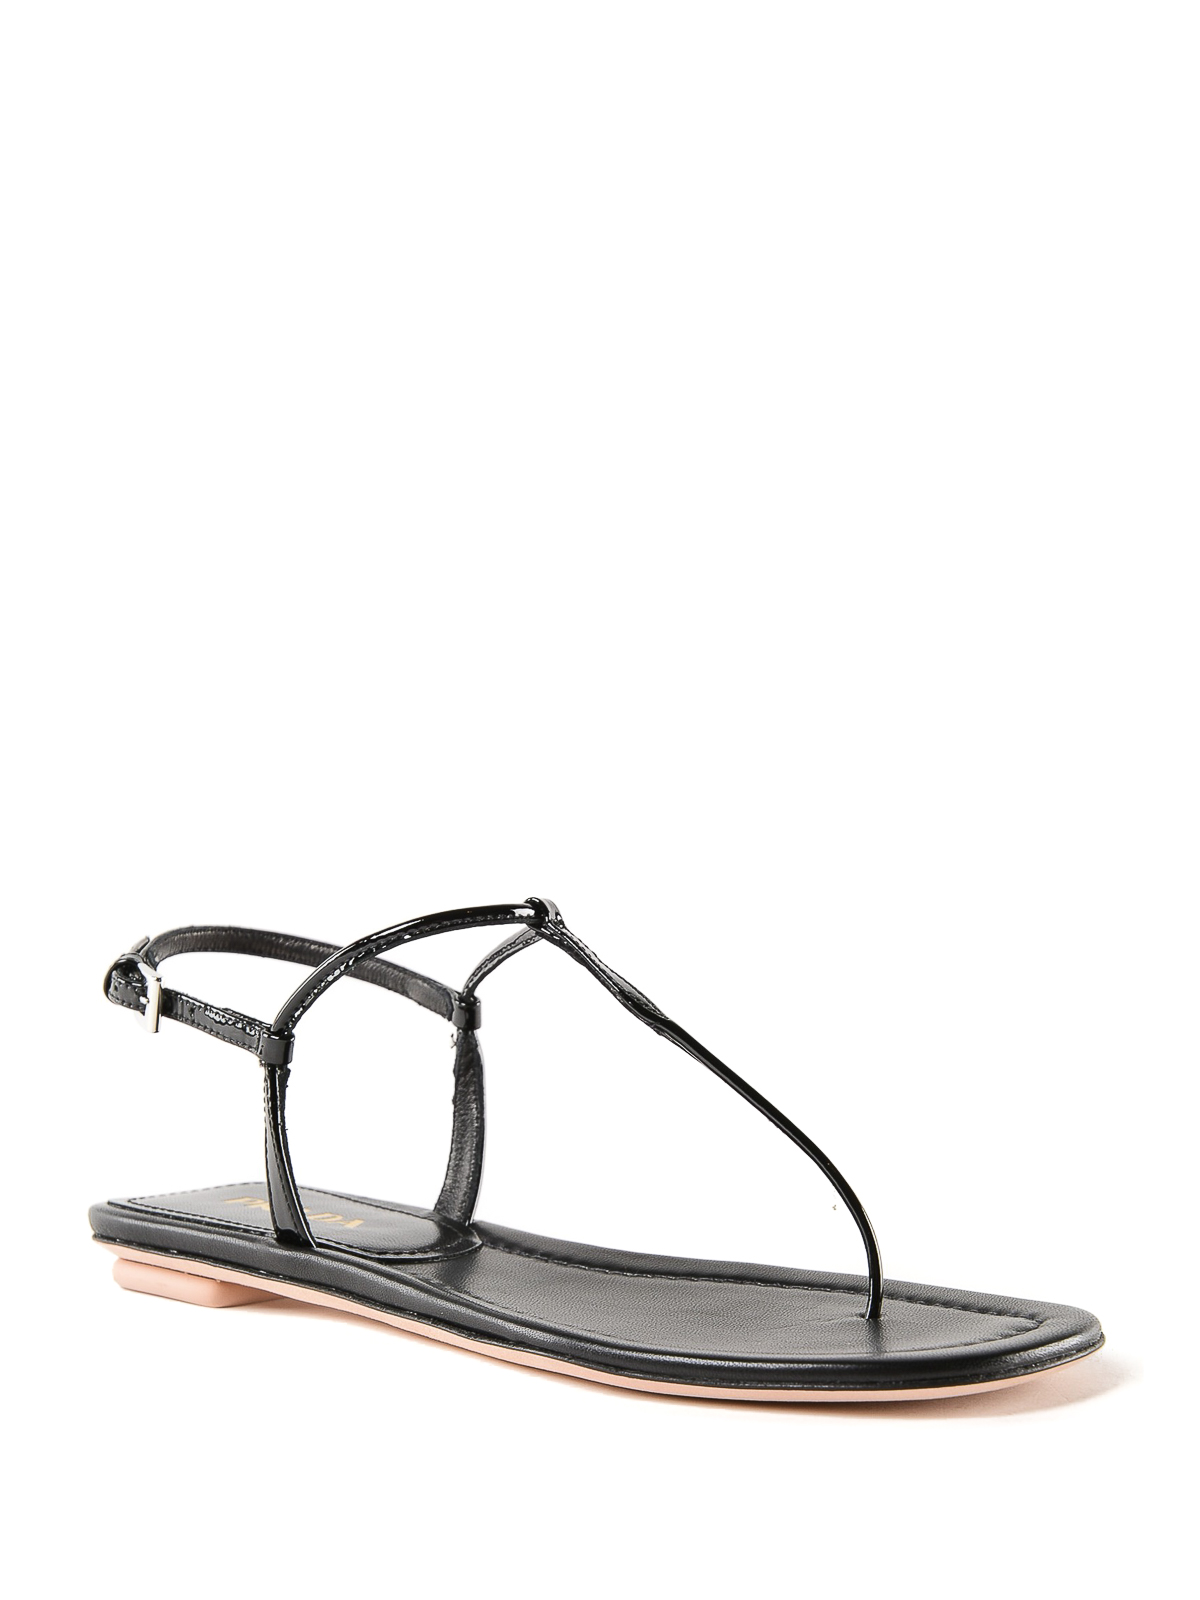 0cd4e256e Prada - Patent leather flat thong sandals - flip flops - 1Y558B069 002